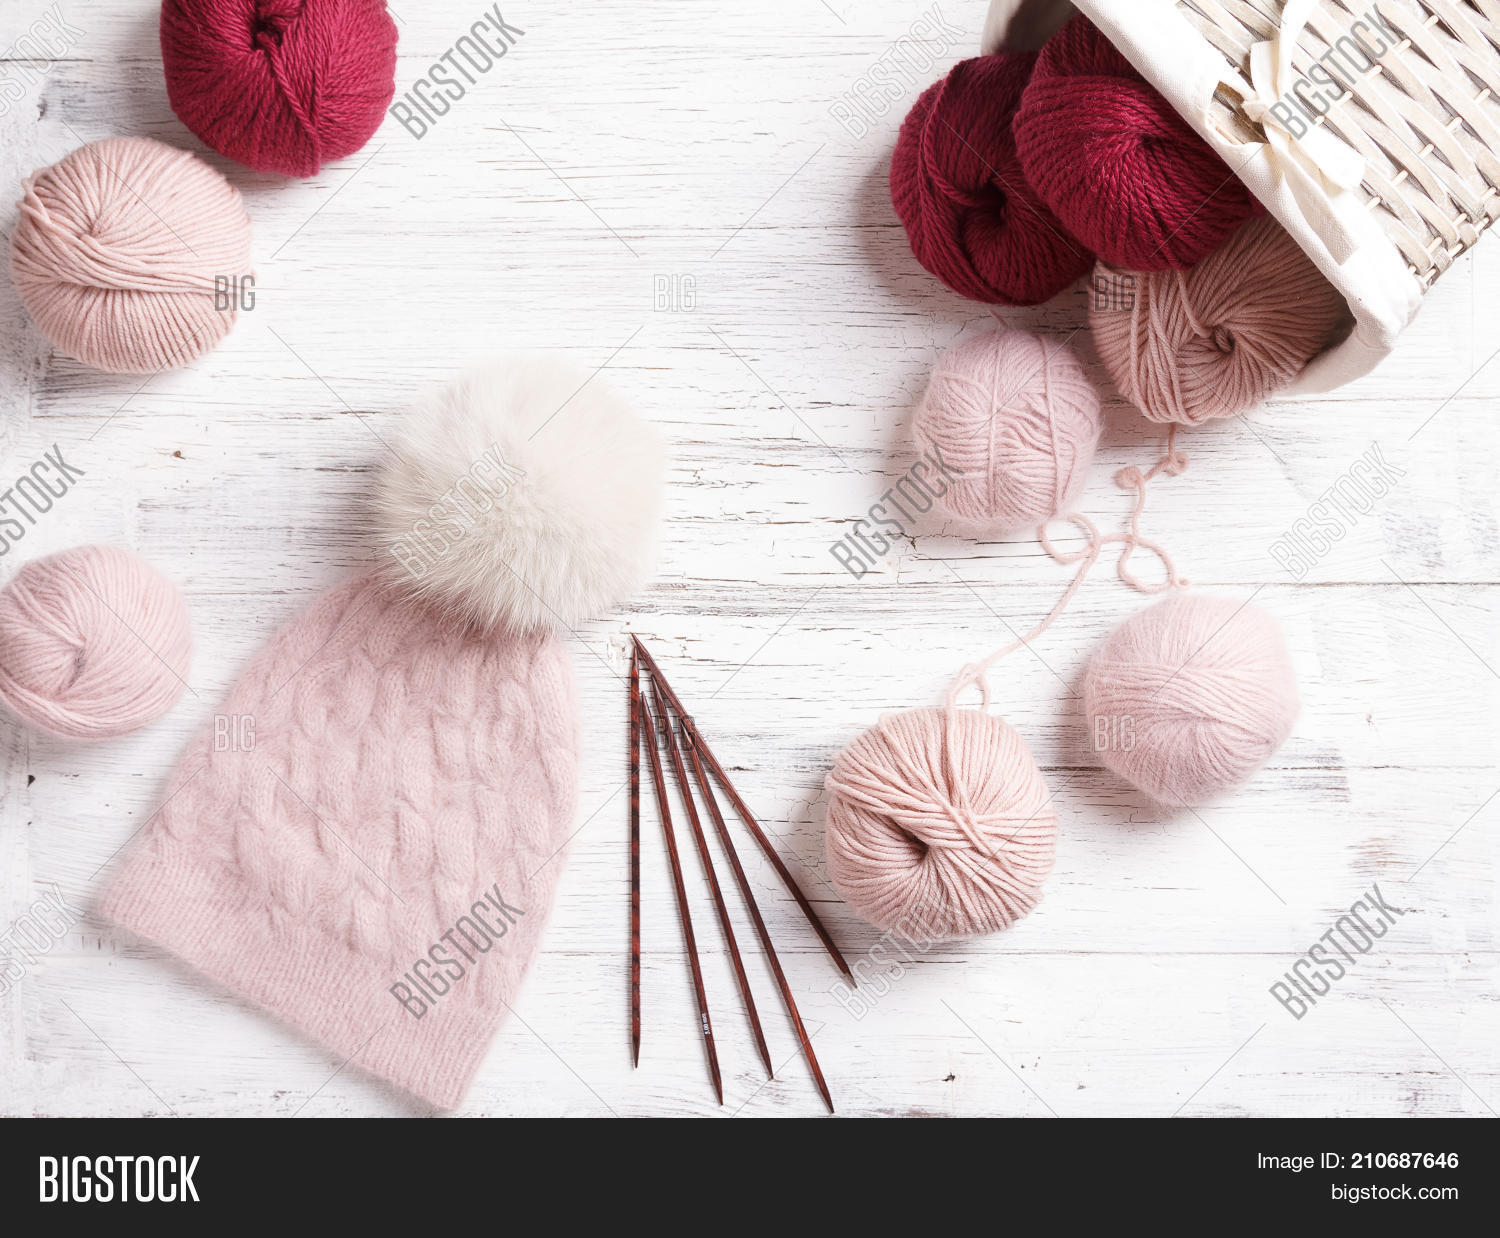 aa0a5950355 Beautiful knitted hat with fur pompom. Knitted warm hat with pink coils of  yarn and